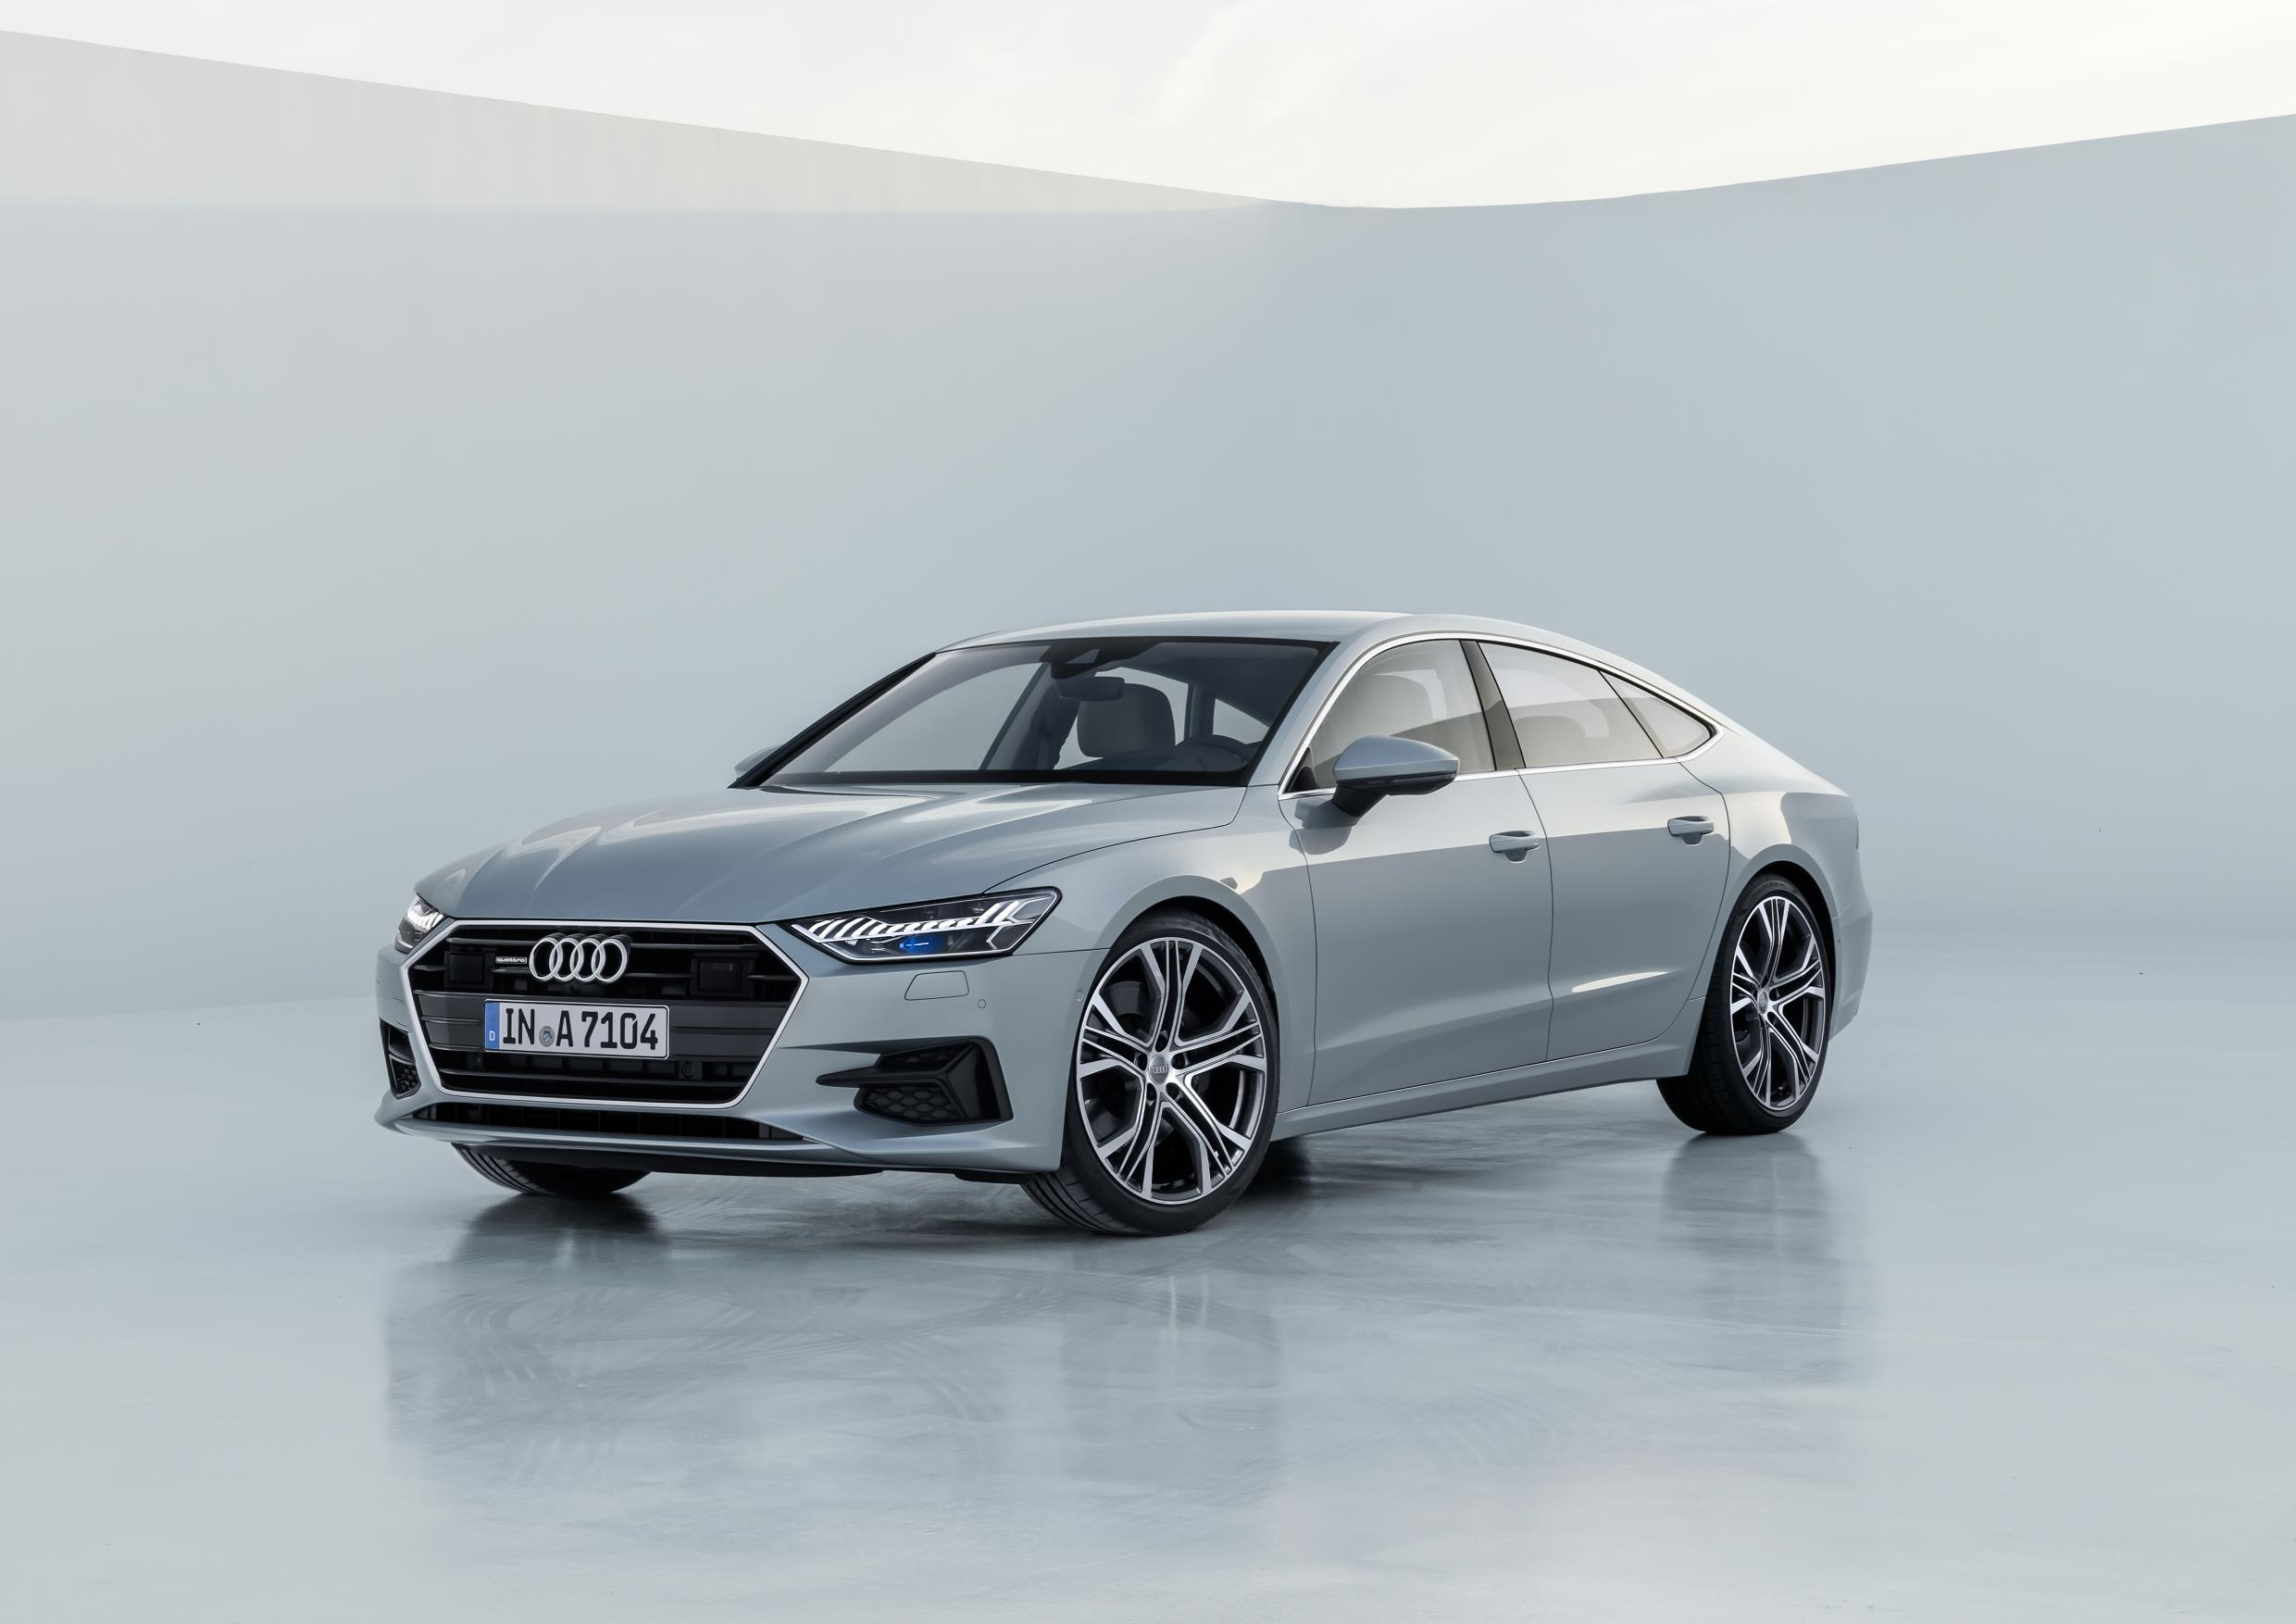 Audi A7 | BMW Third Quarter Profits Drop